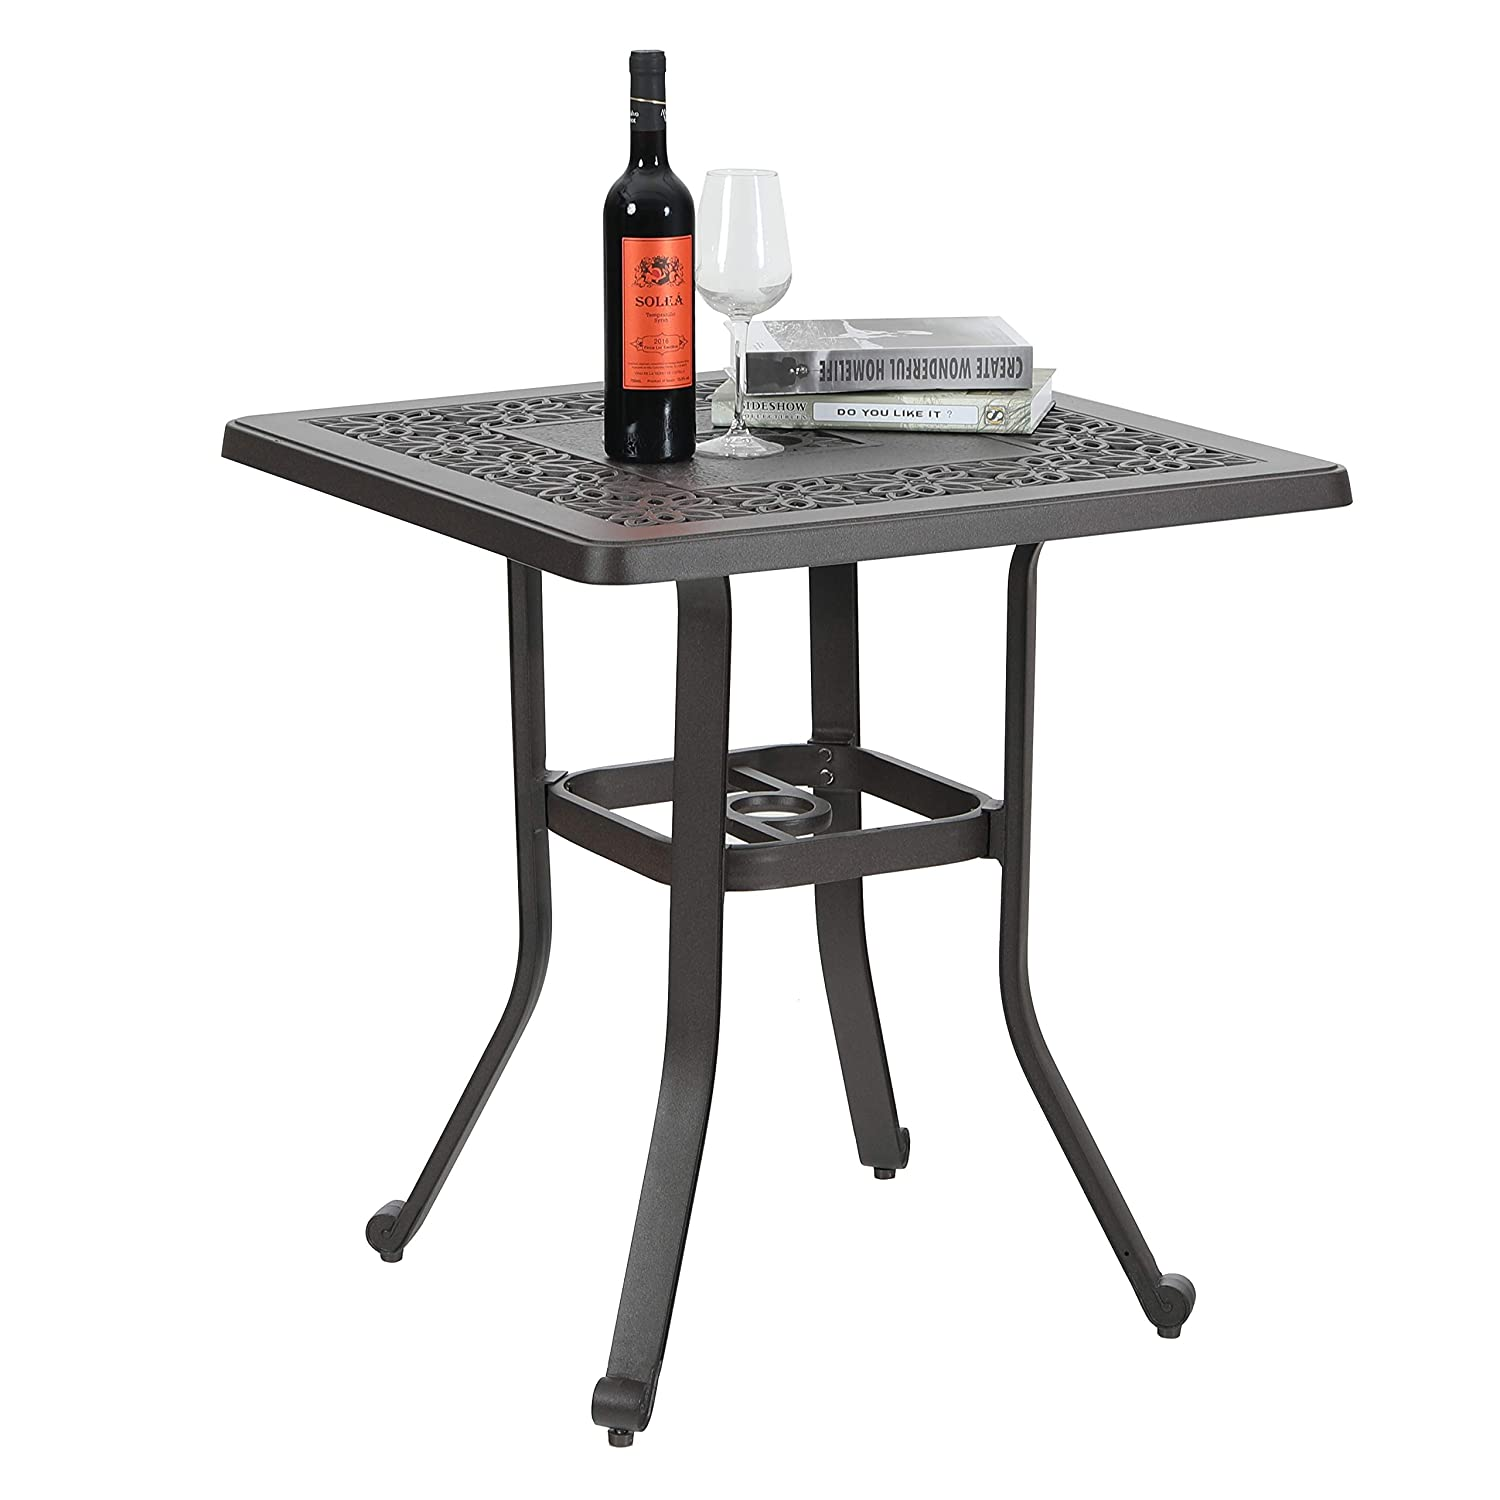 "PHI VILLA Patio Cast Aluminum 27.5"" Bistro Square Dining Table with Umbrella Hole and Frosted Surface"